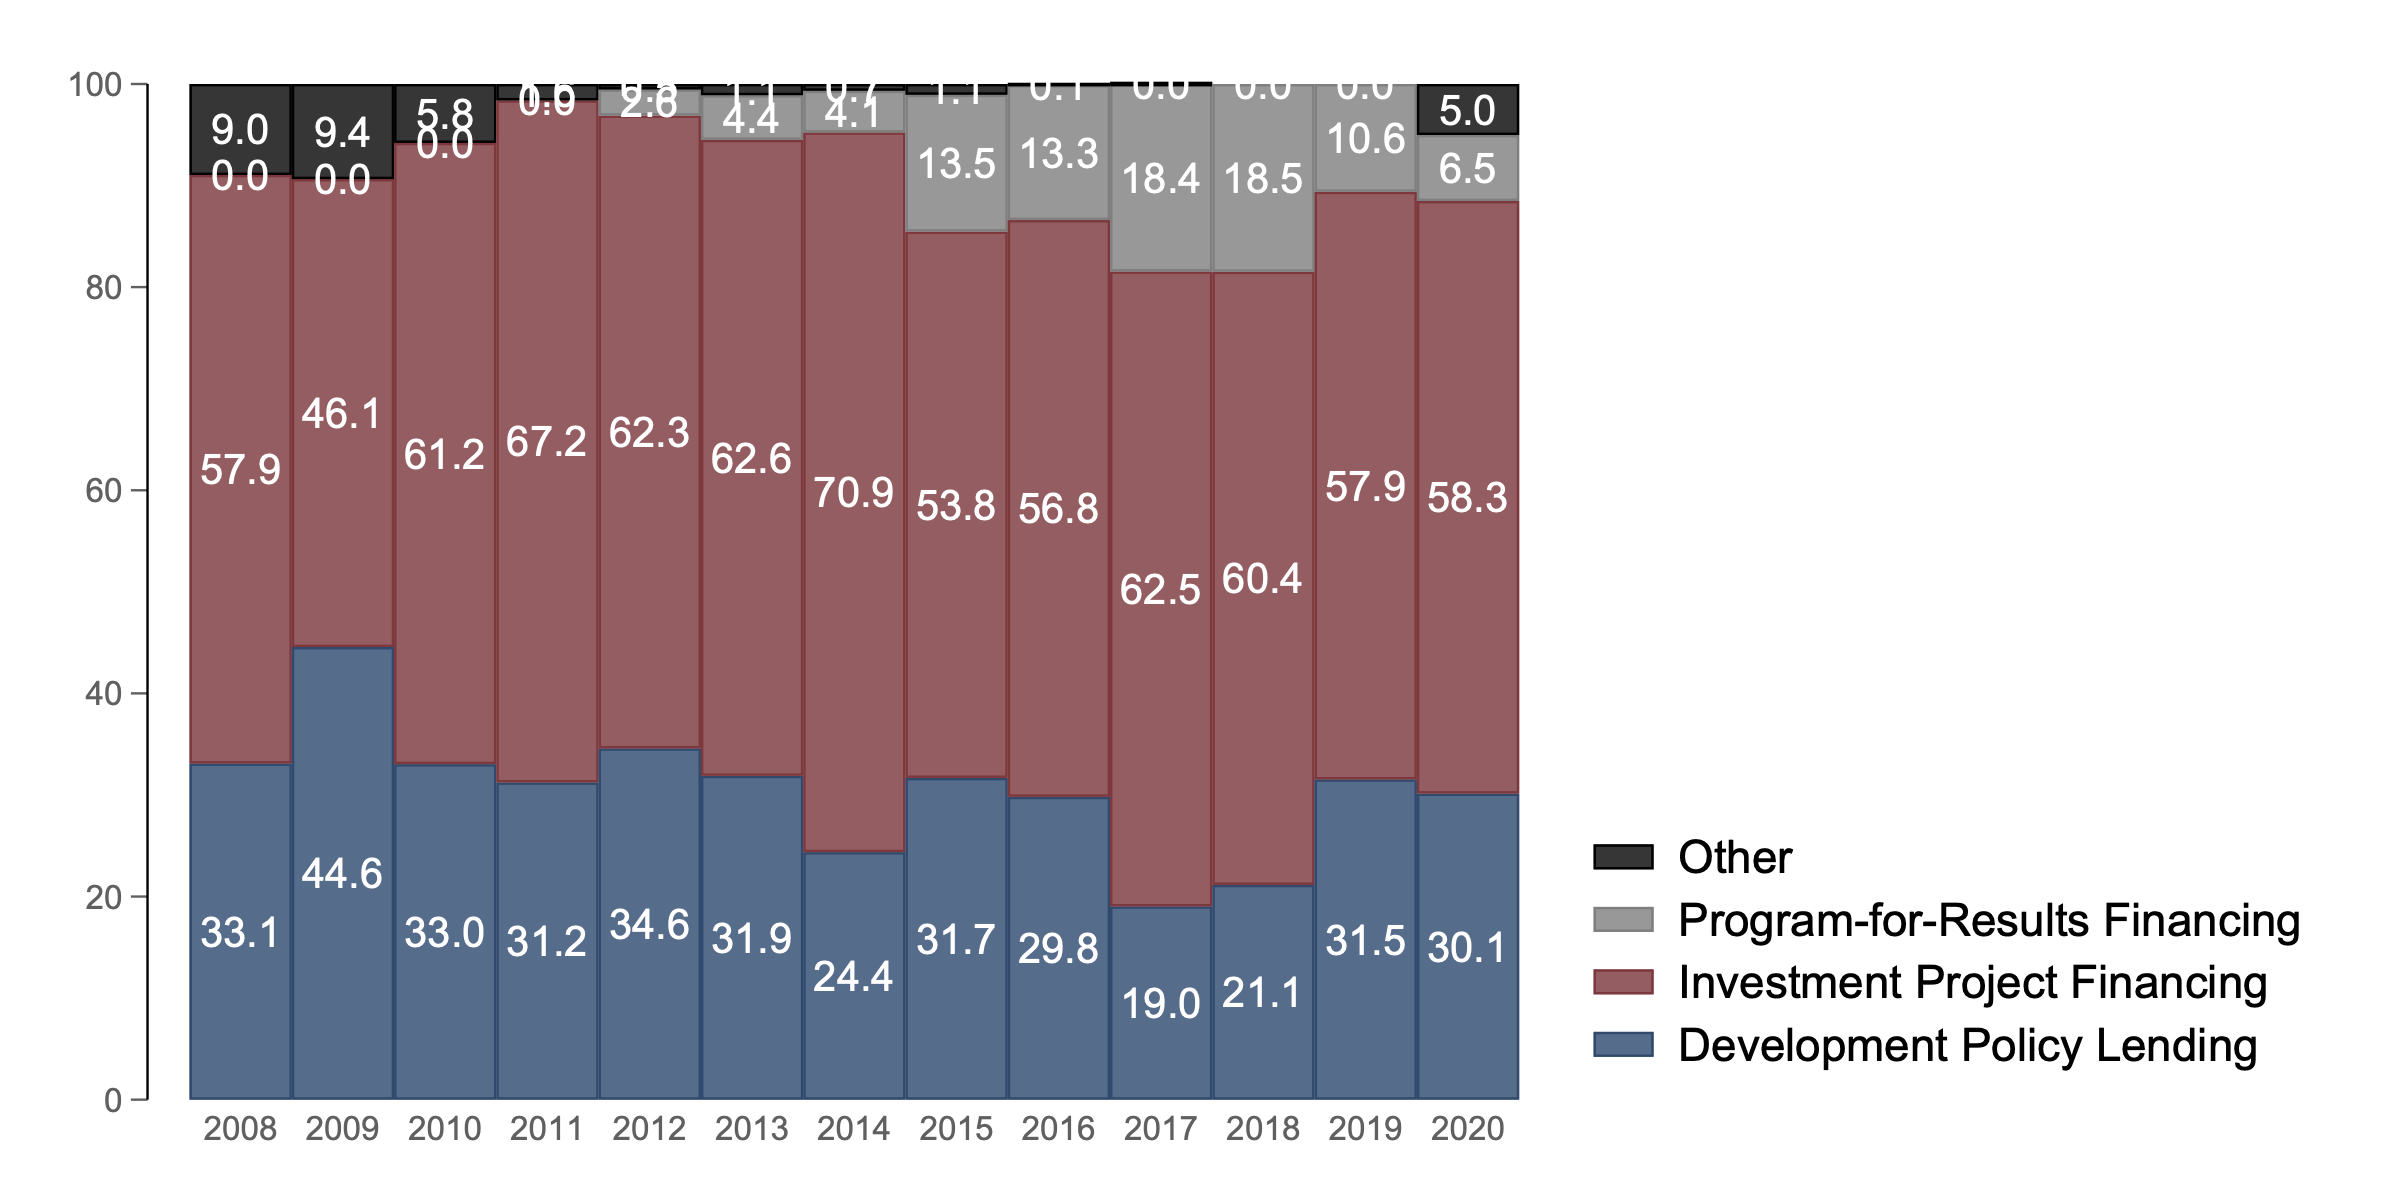 Chart showing that investment policy financing has remained between 55 and 62 percent of the Bank's lending, including through the crisis. Development policy lending has not increased.